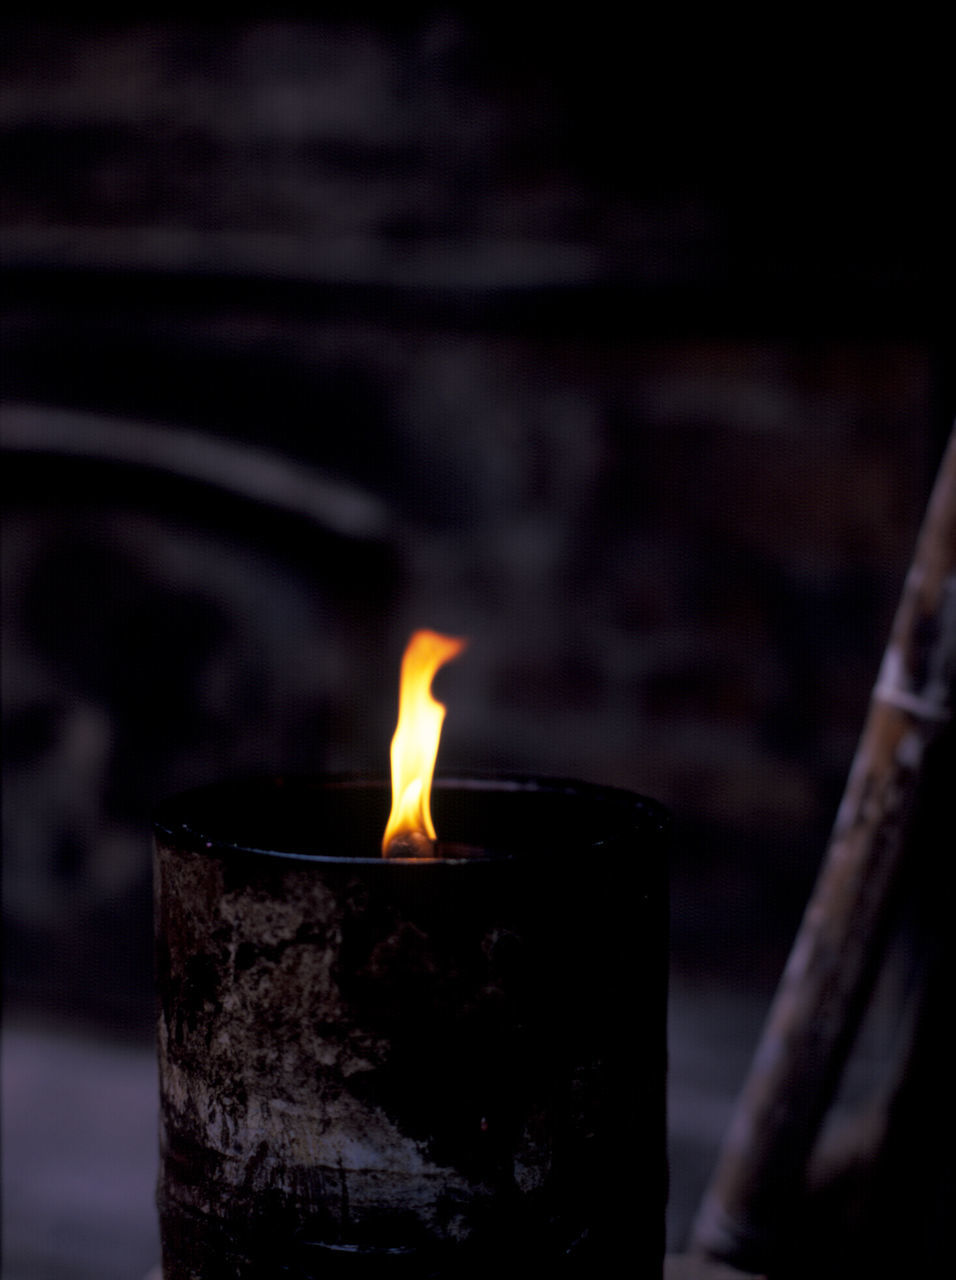 flame, burning, heat - temperature, close-up, no people, focus on foreground, night, indoors